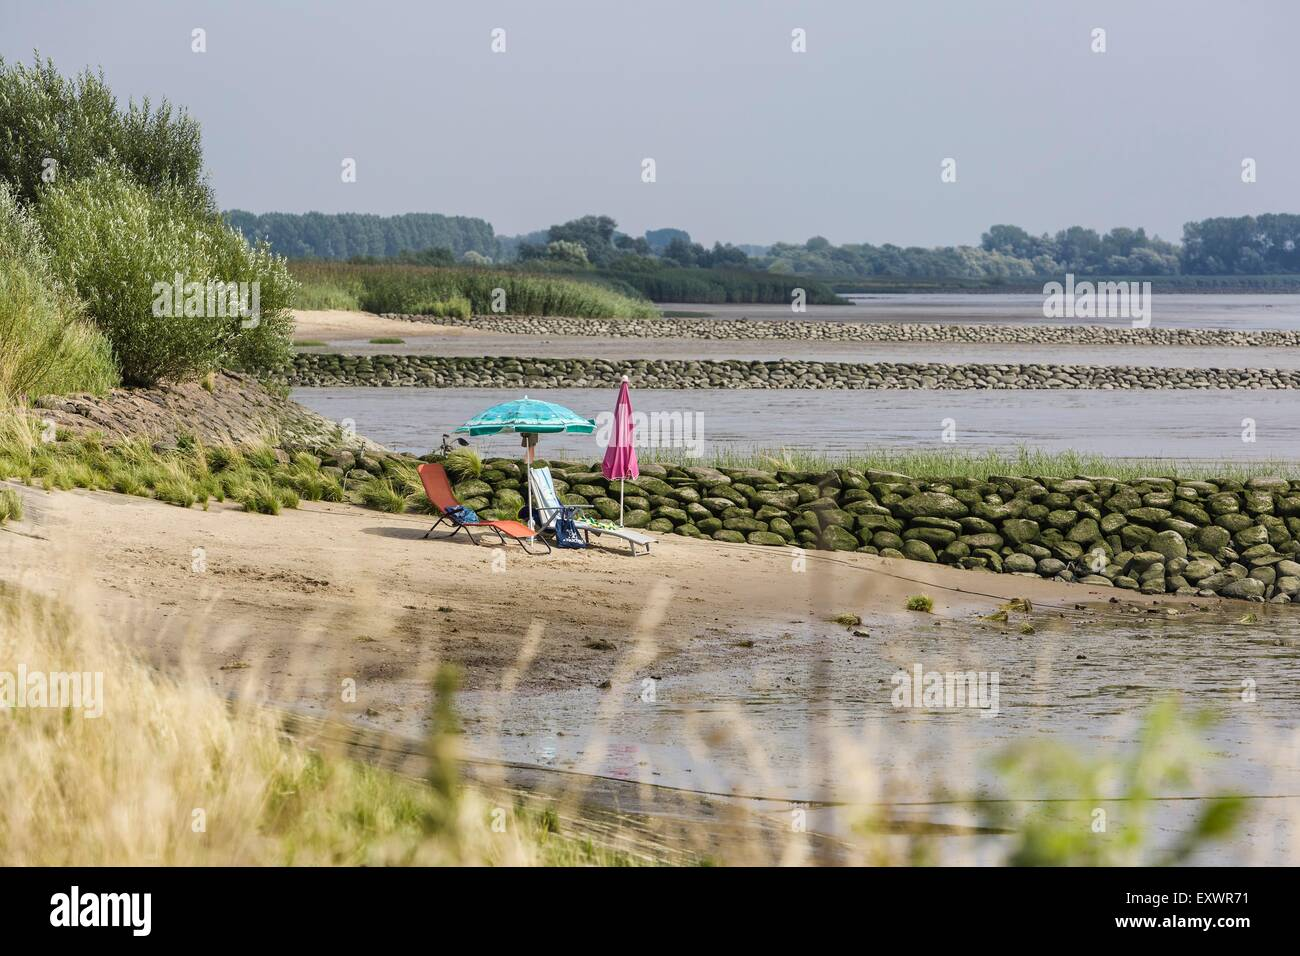 Lounger and two sunshades at riverbank, Kollmar, Schleswig-Holstein, Germany, Europe - Stock Image